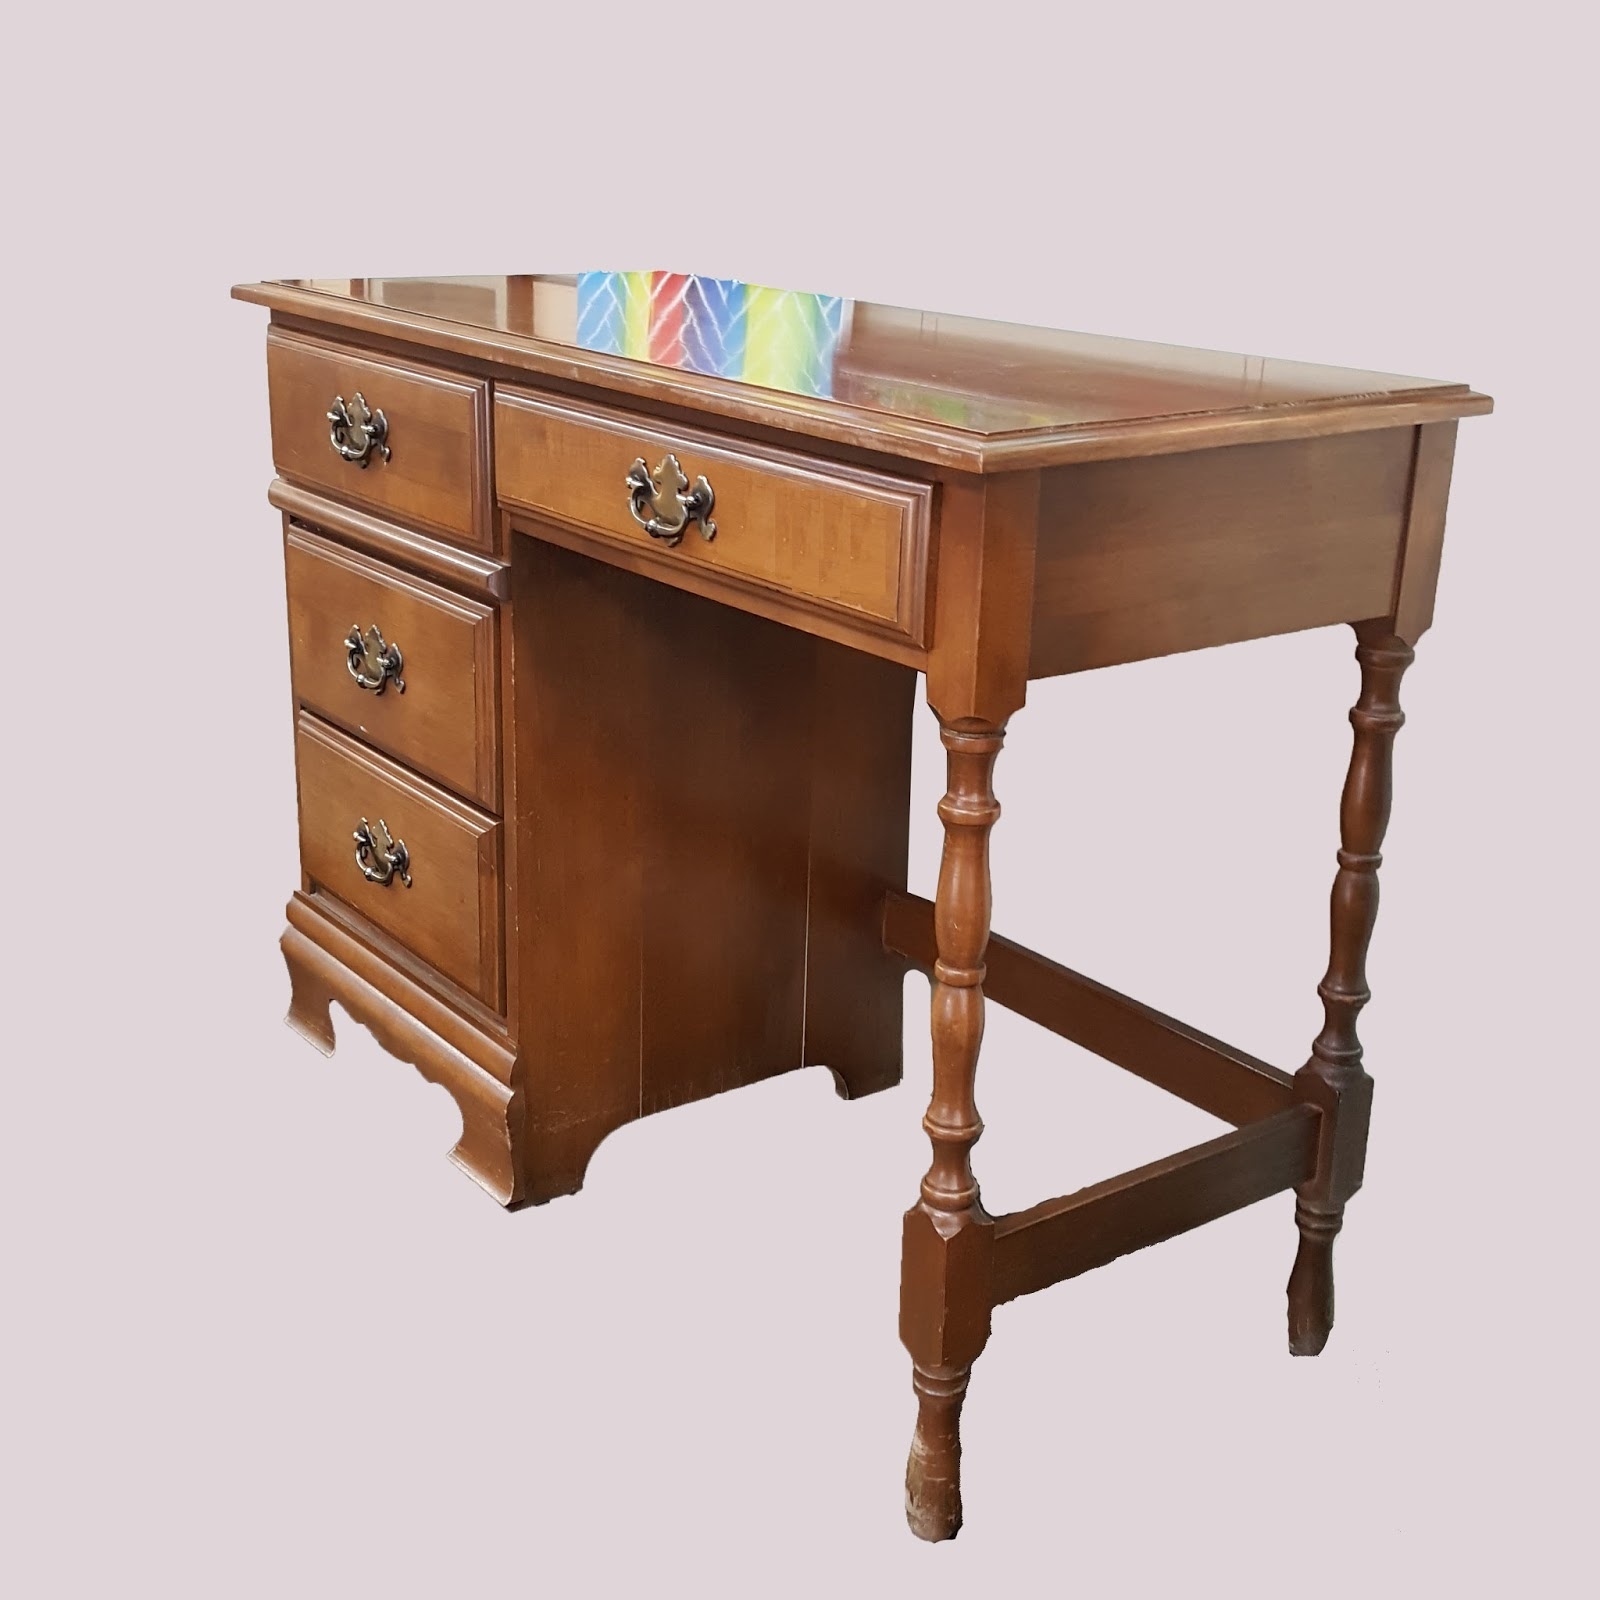 Uhuru Furniture Collectibles Maple Desk 65 Sold